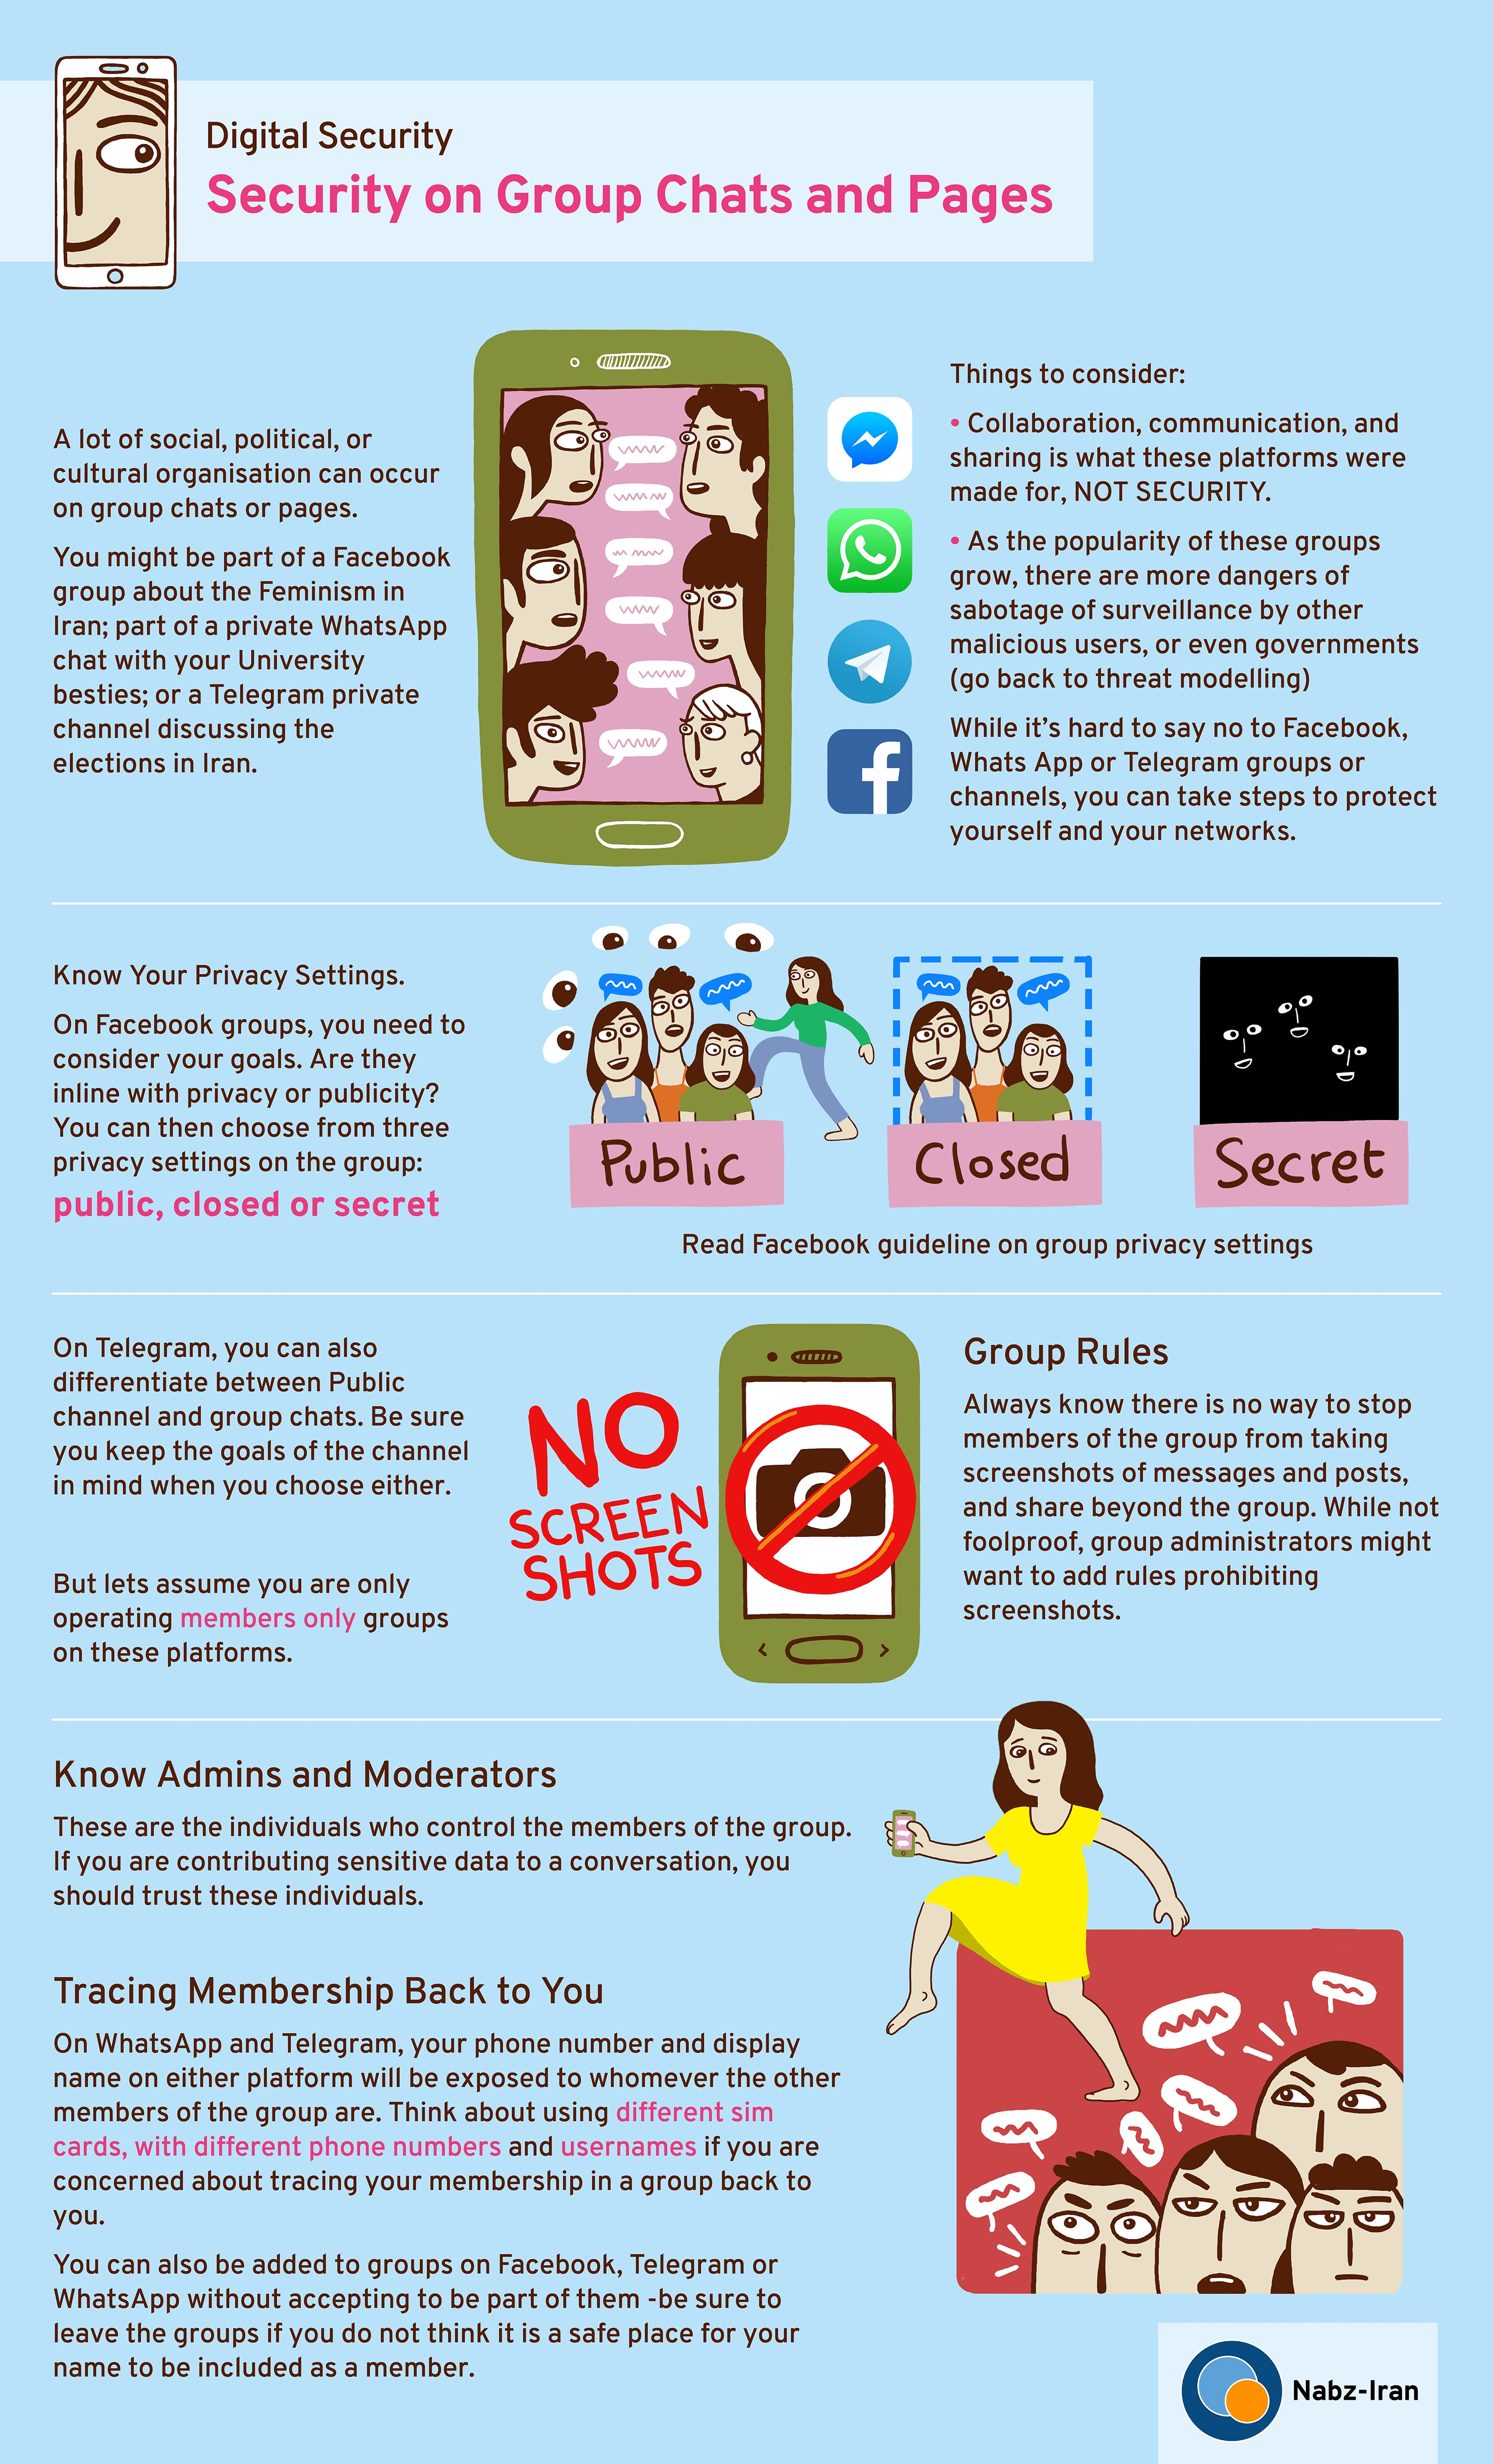 Nabz Iran | Infographic: Security on Group Chats and Pages - Digital